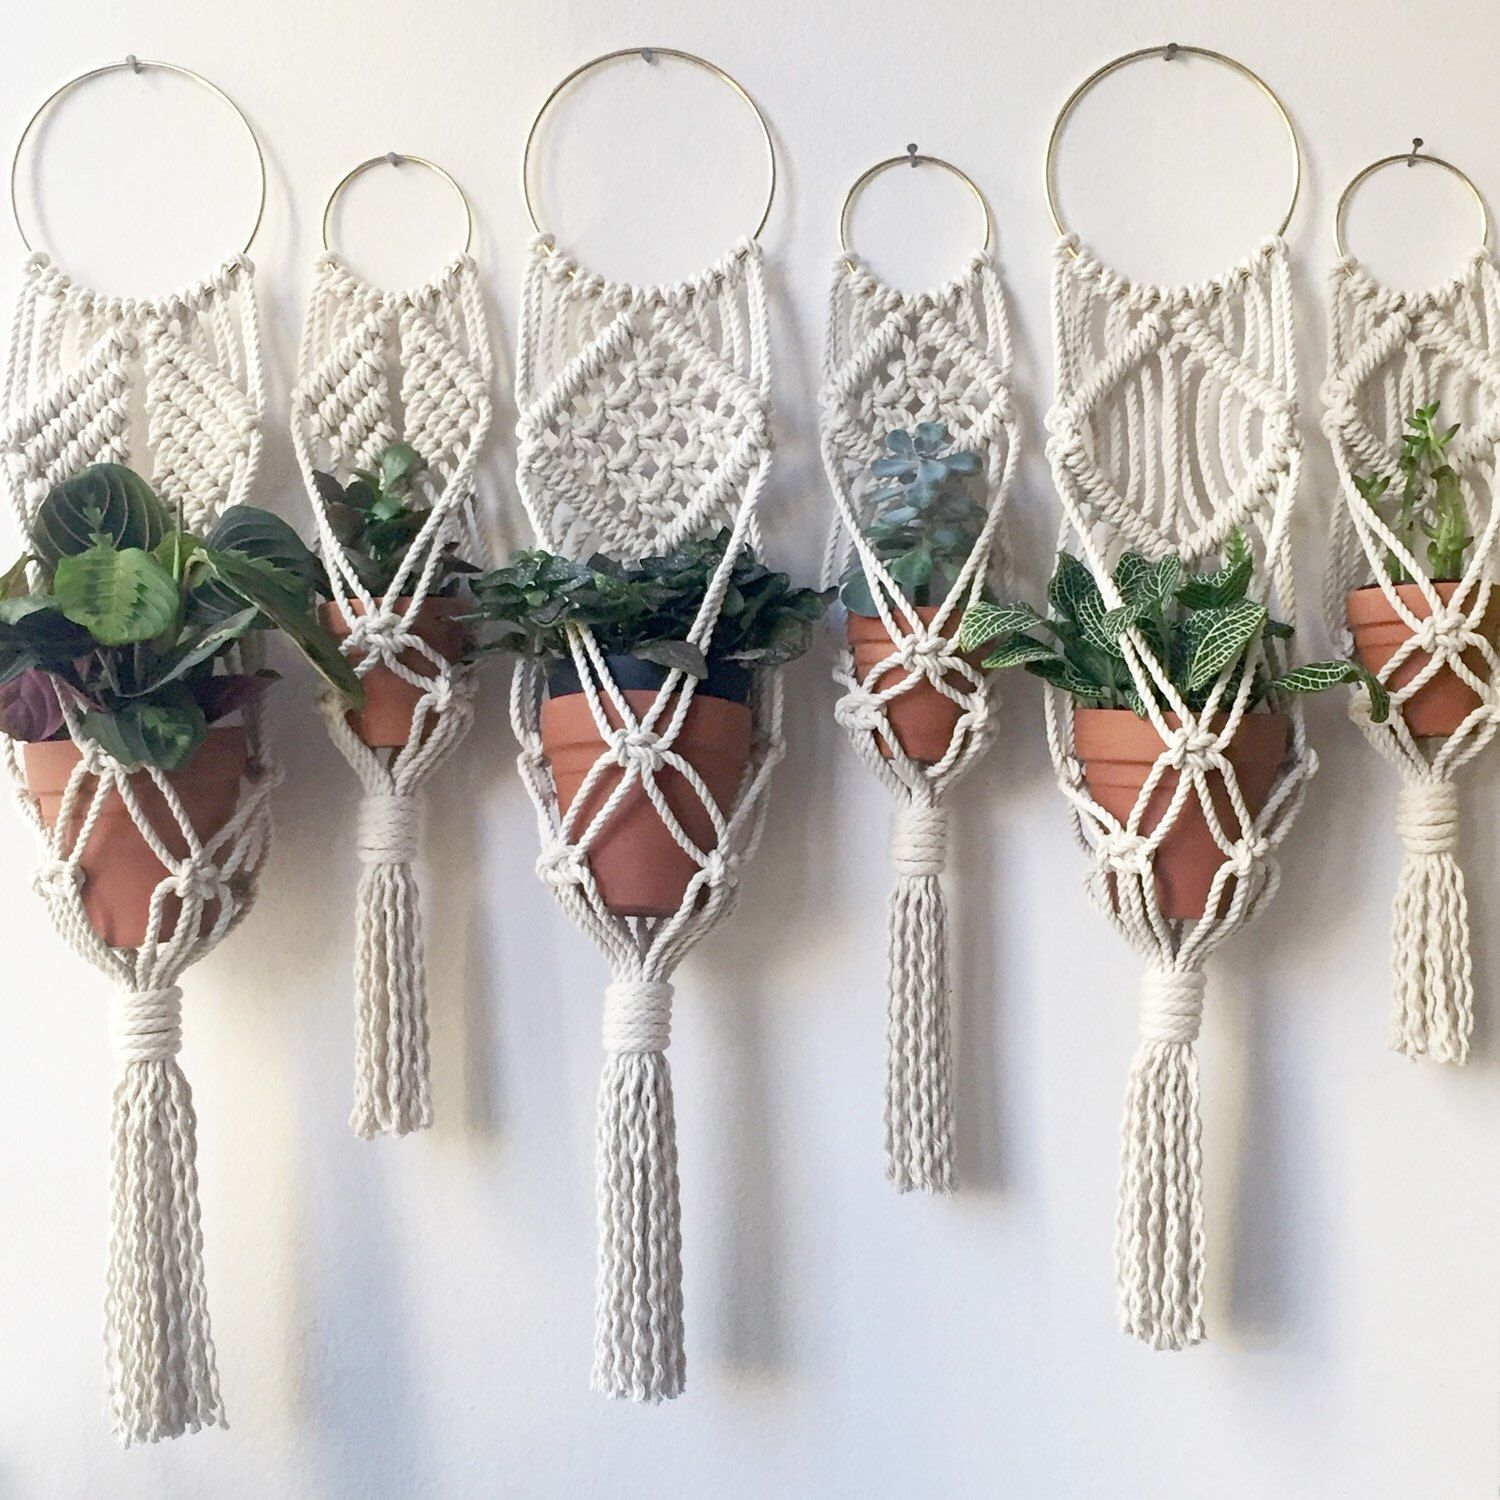 25+ unique Macrame plant hangers ideas on Pinterest ...